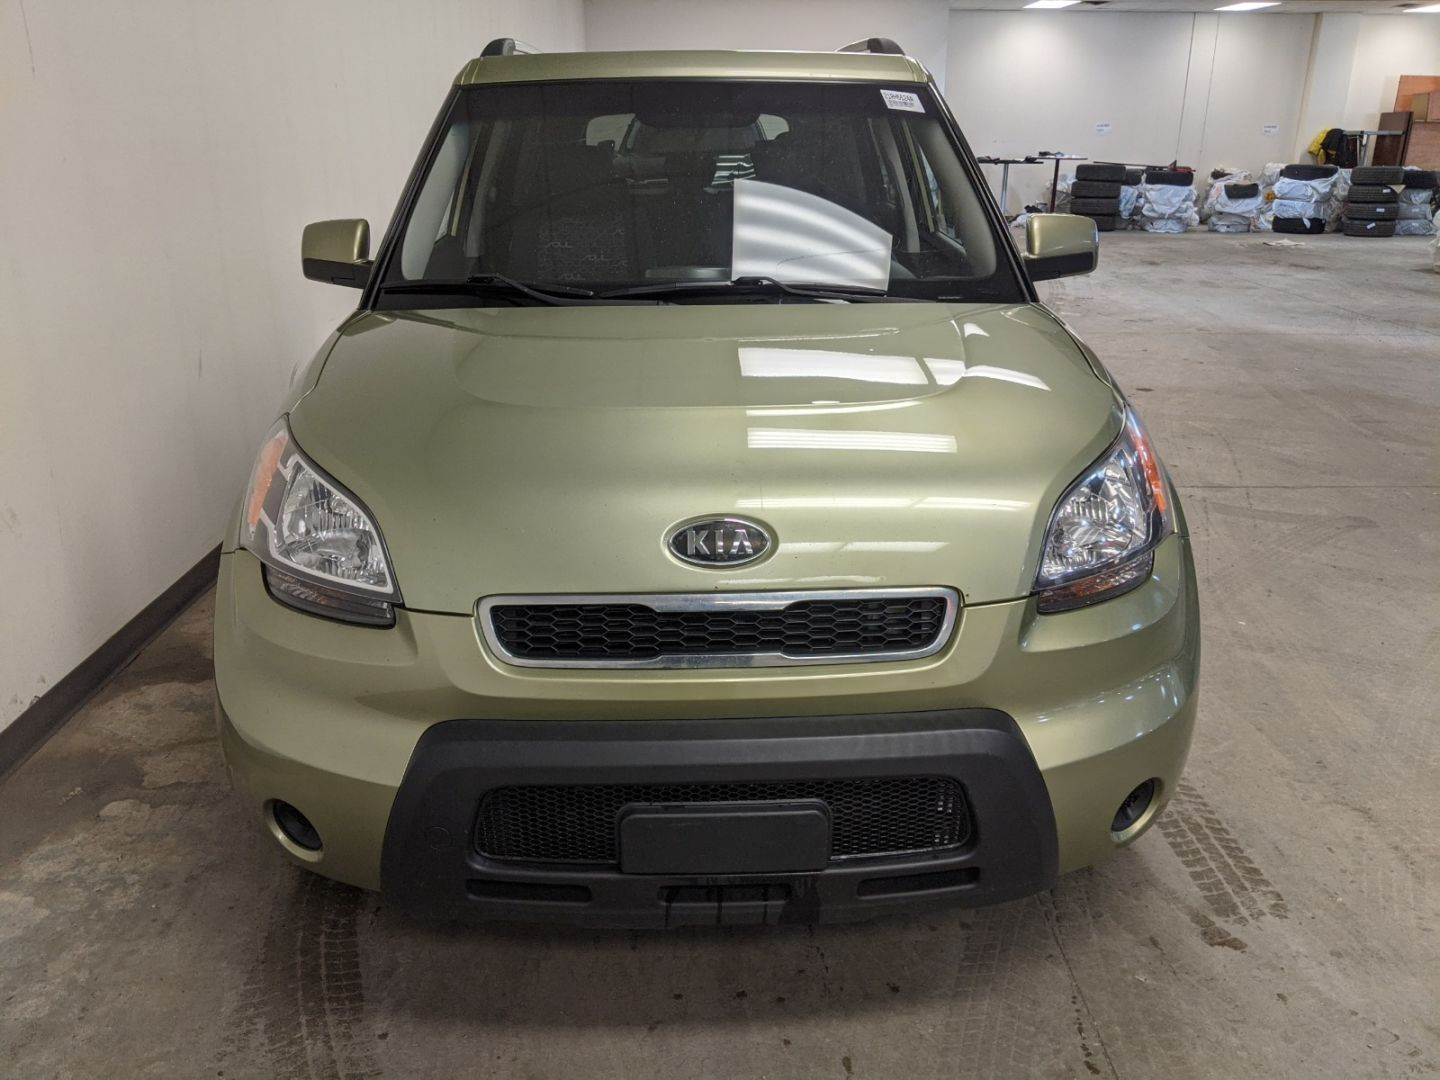 2010 Kia Soul 2u for sale in Edmonton, Alberta